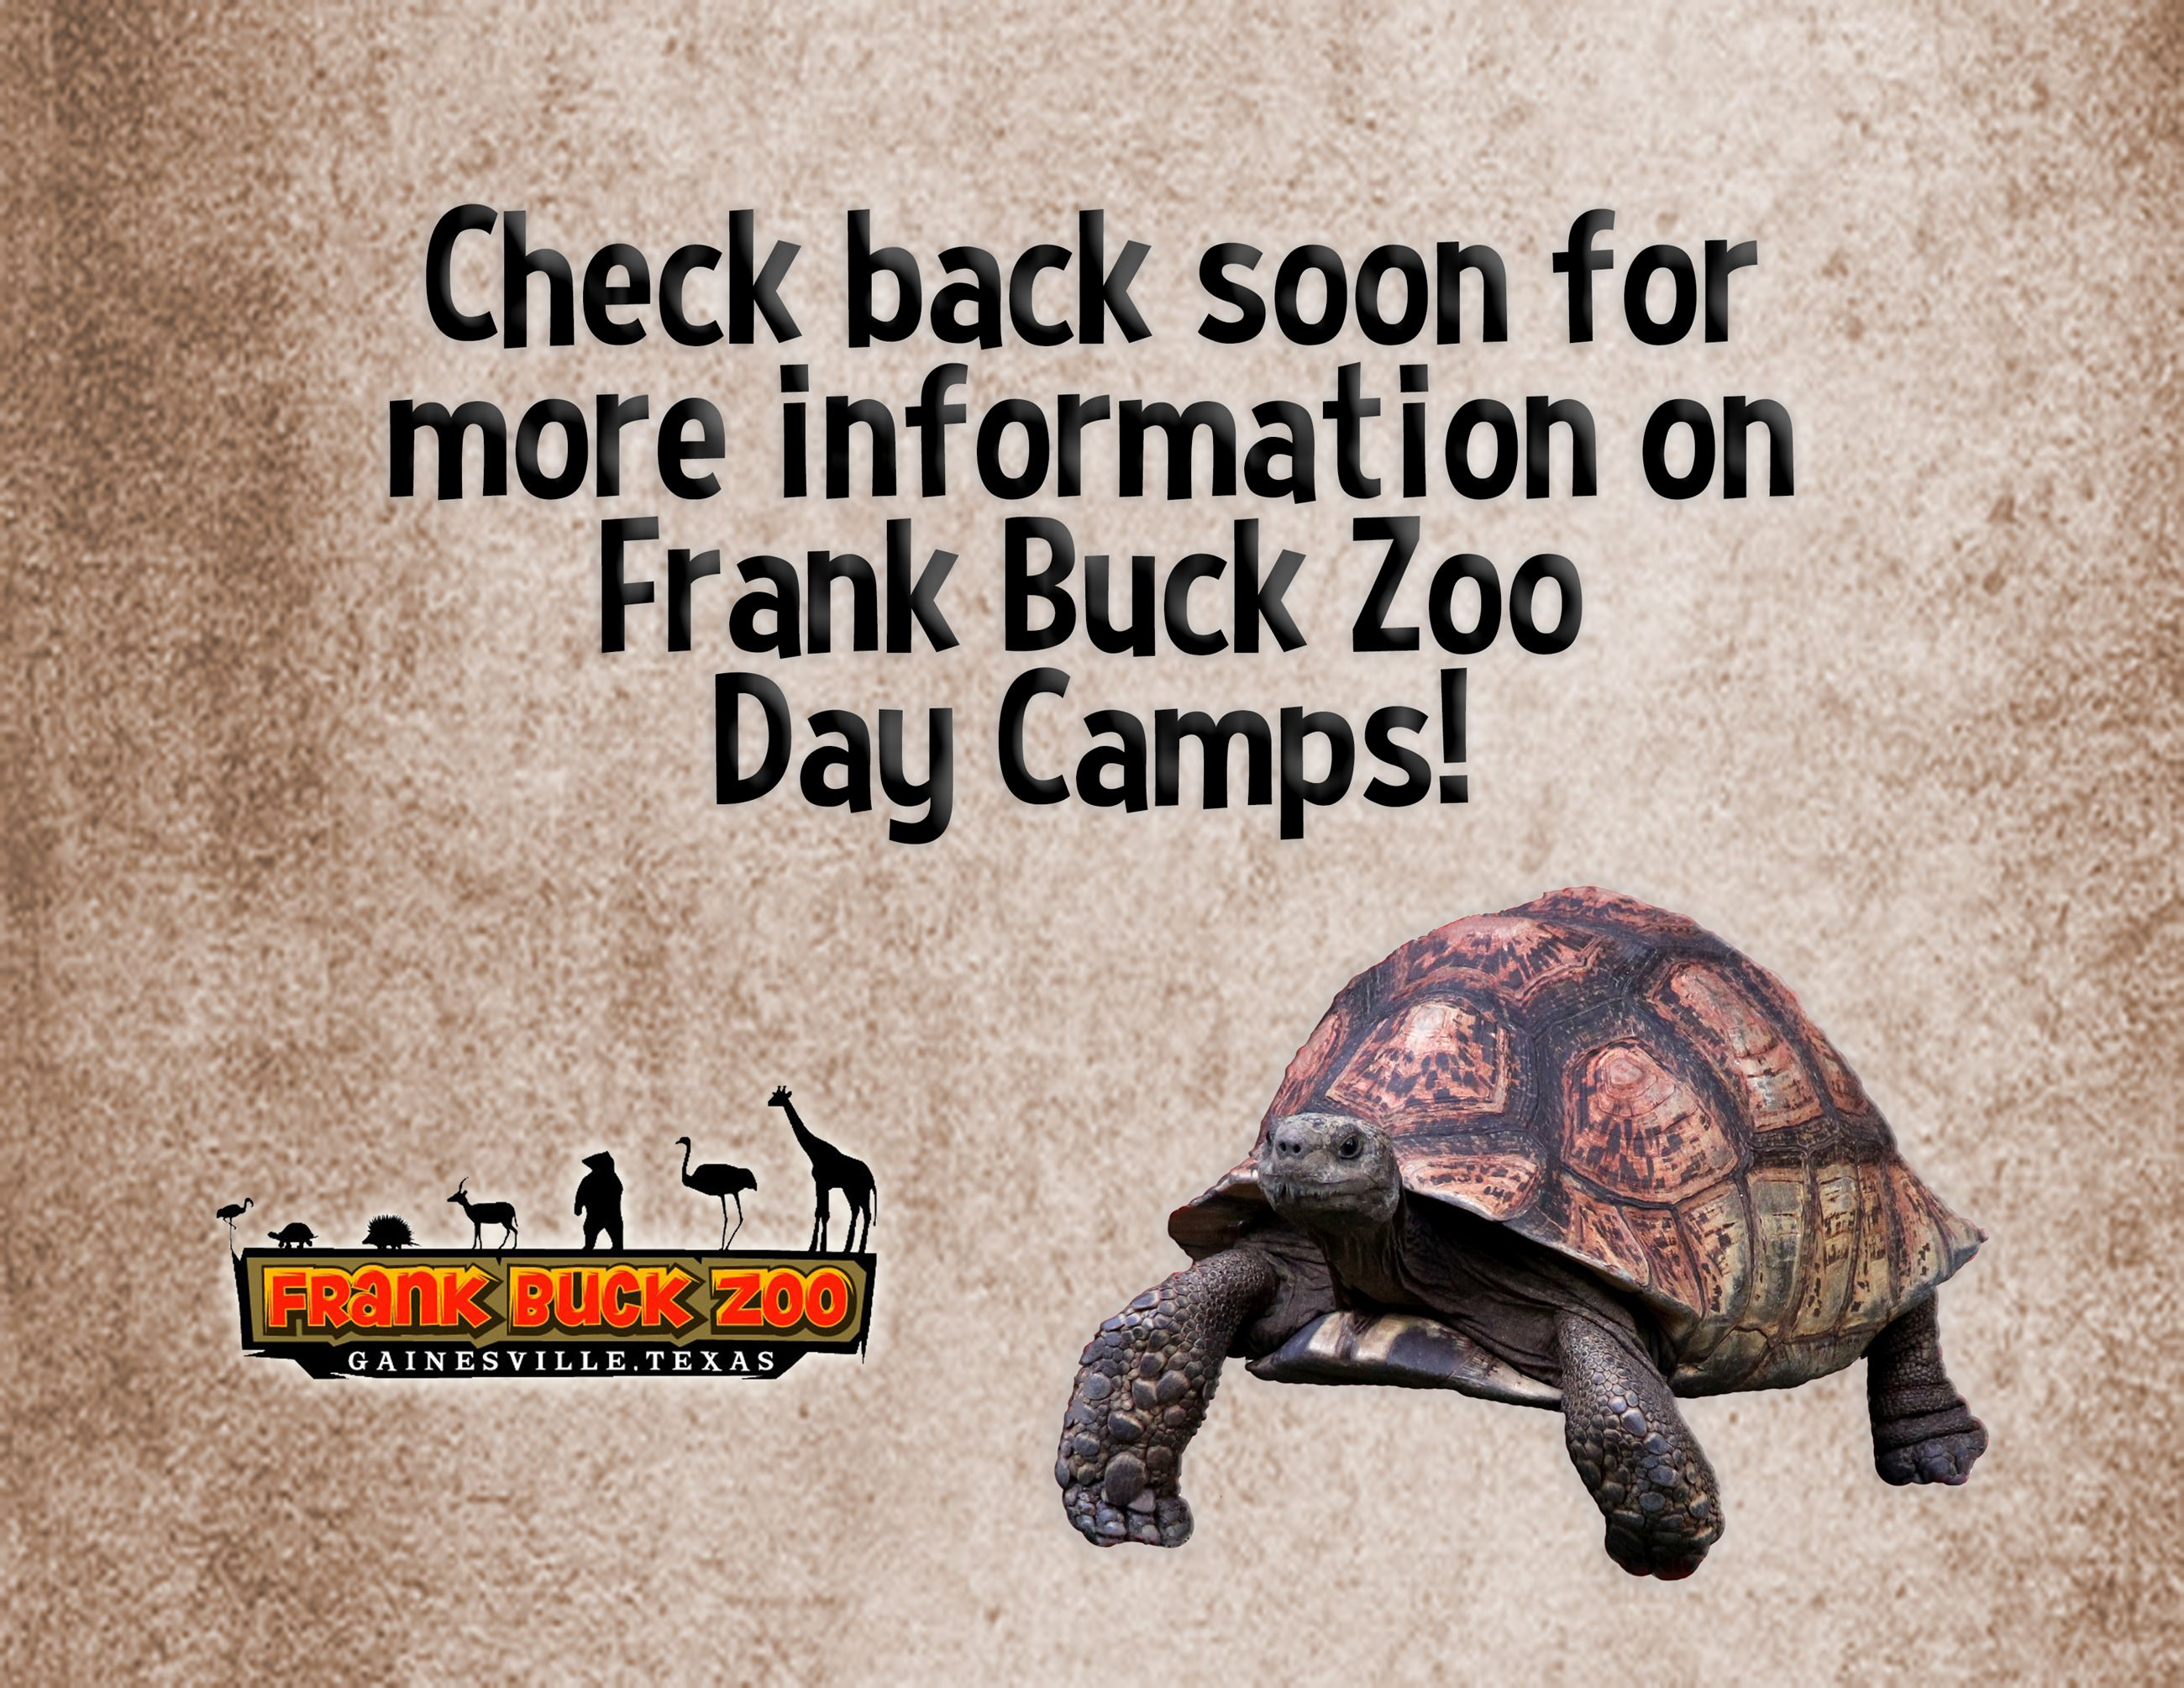 Check Back Soon for Information on Day Camps